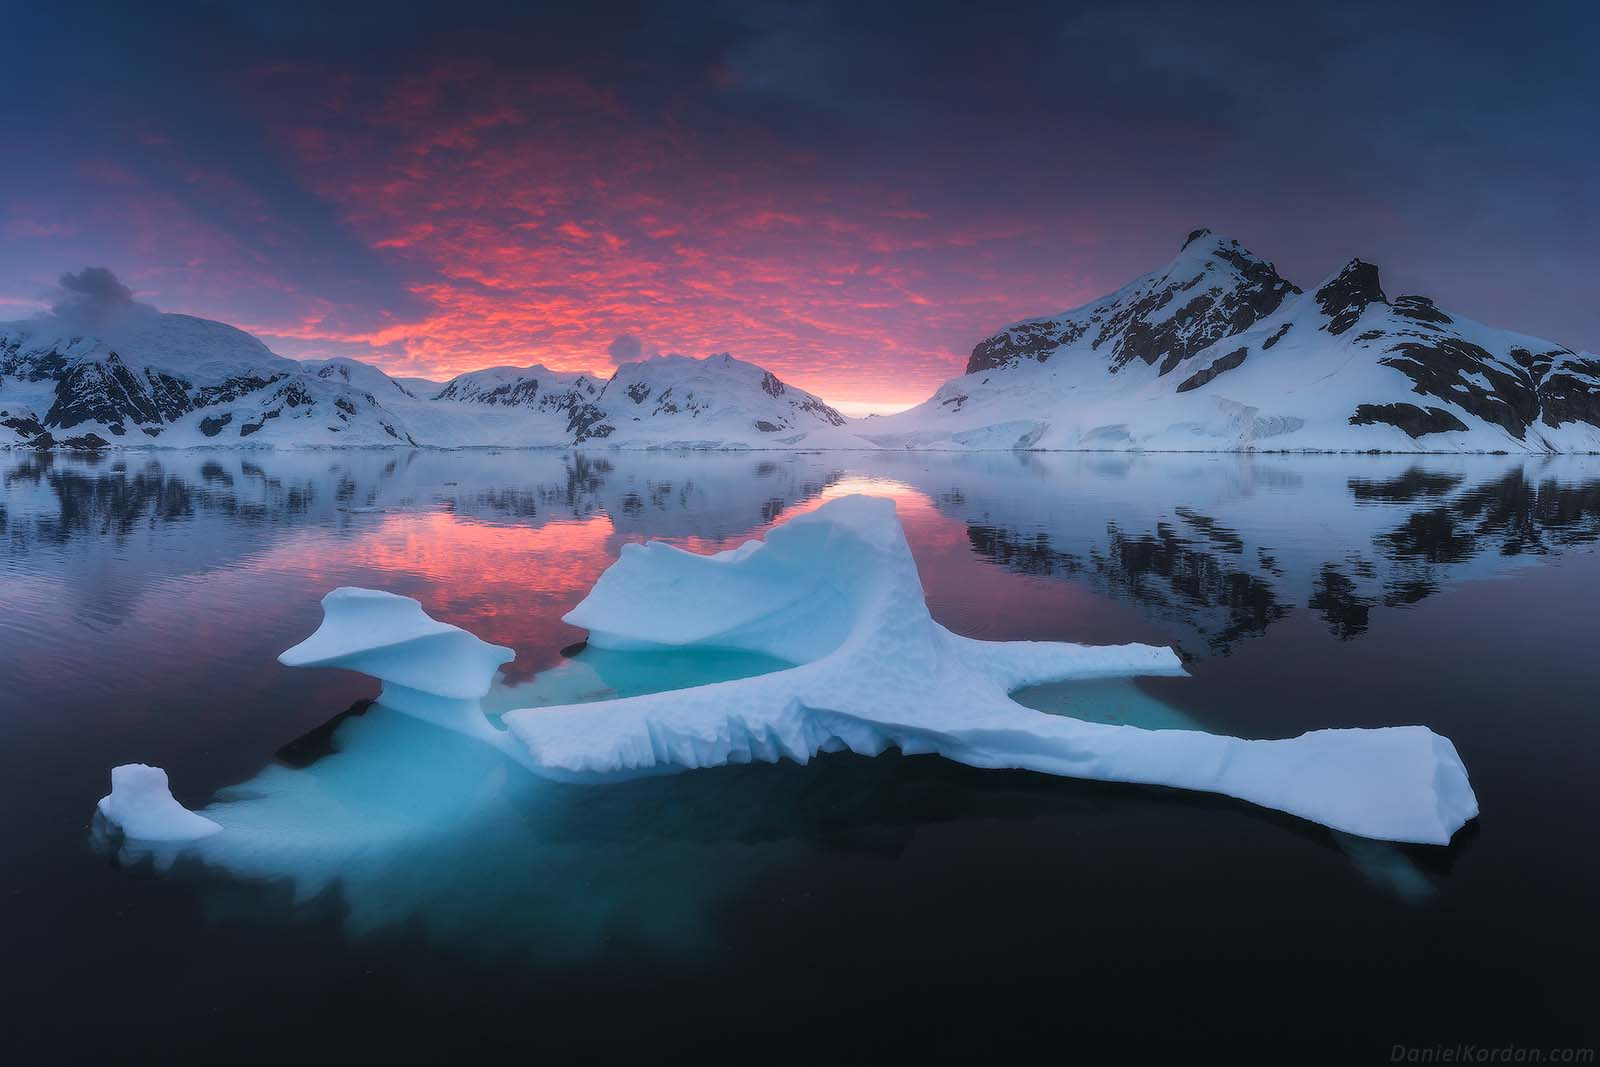 22 Day Antarctica Photography Expedition on Bark Europa - day 15